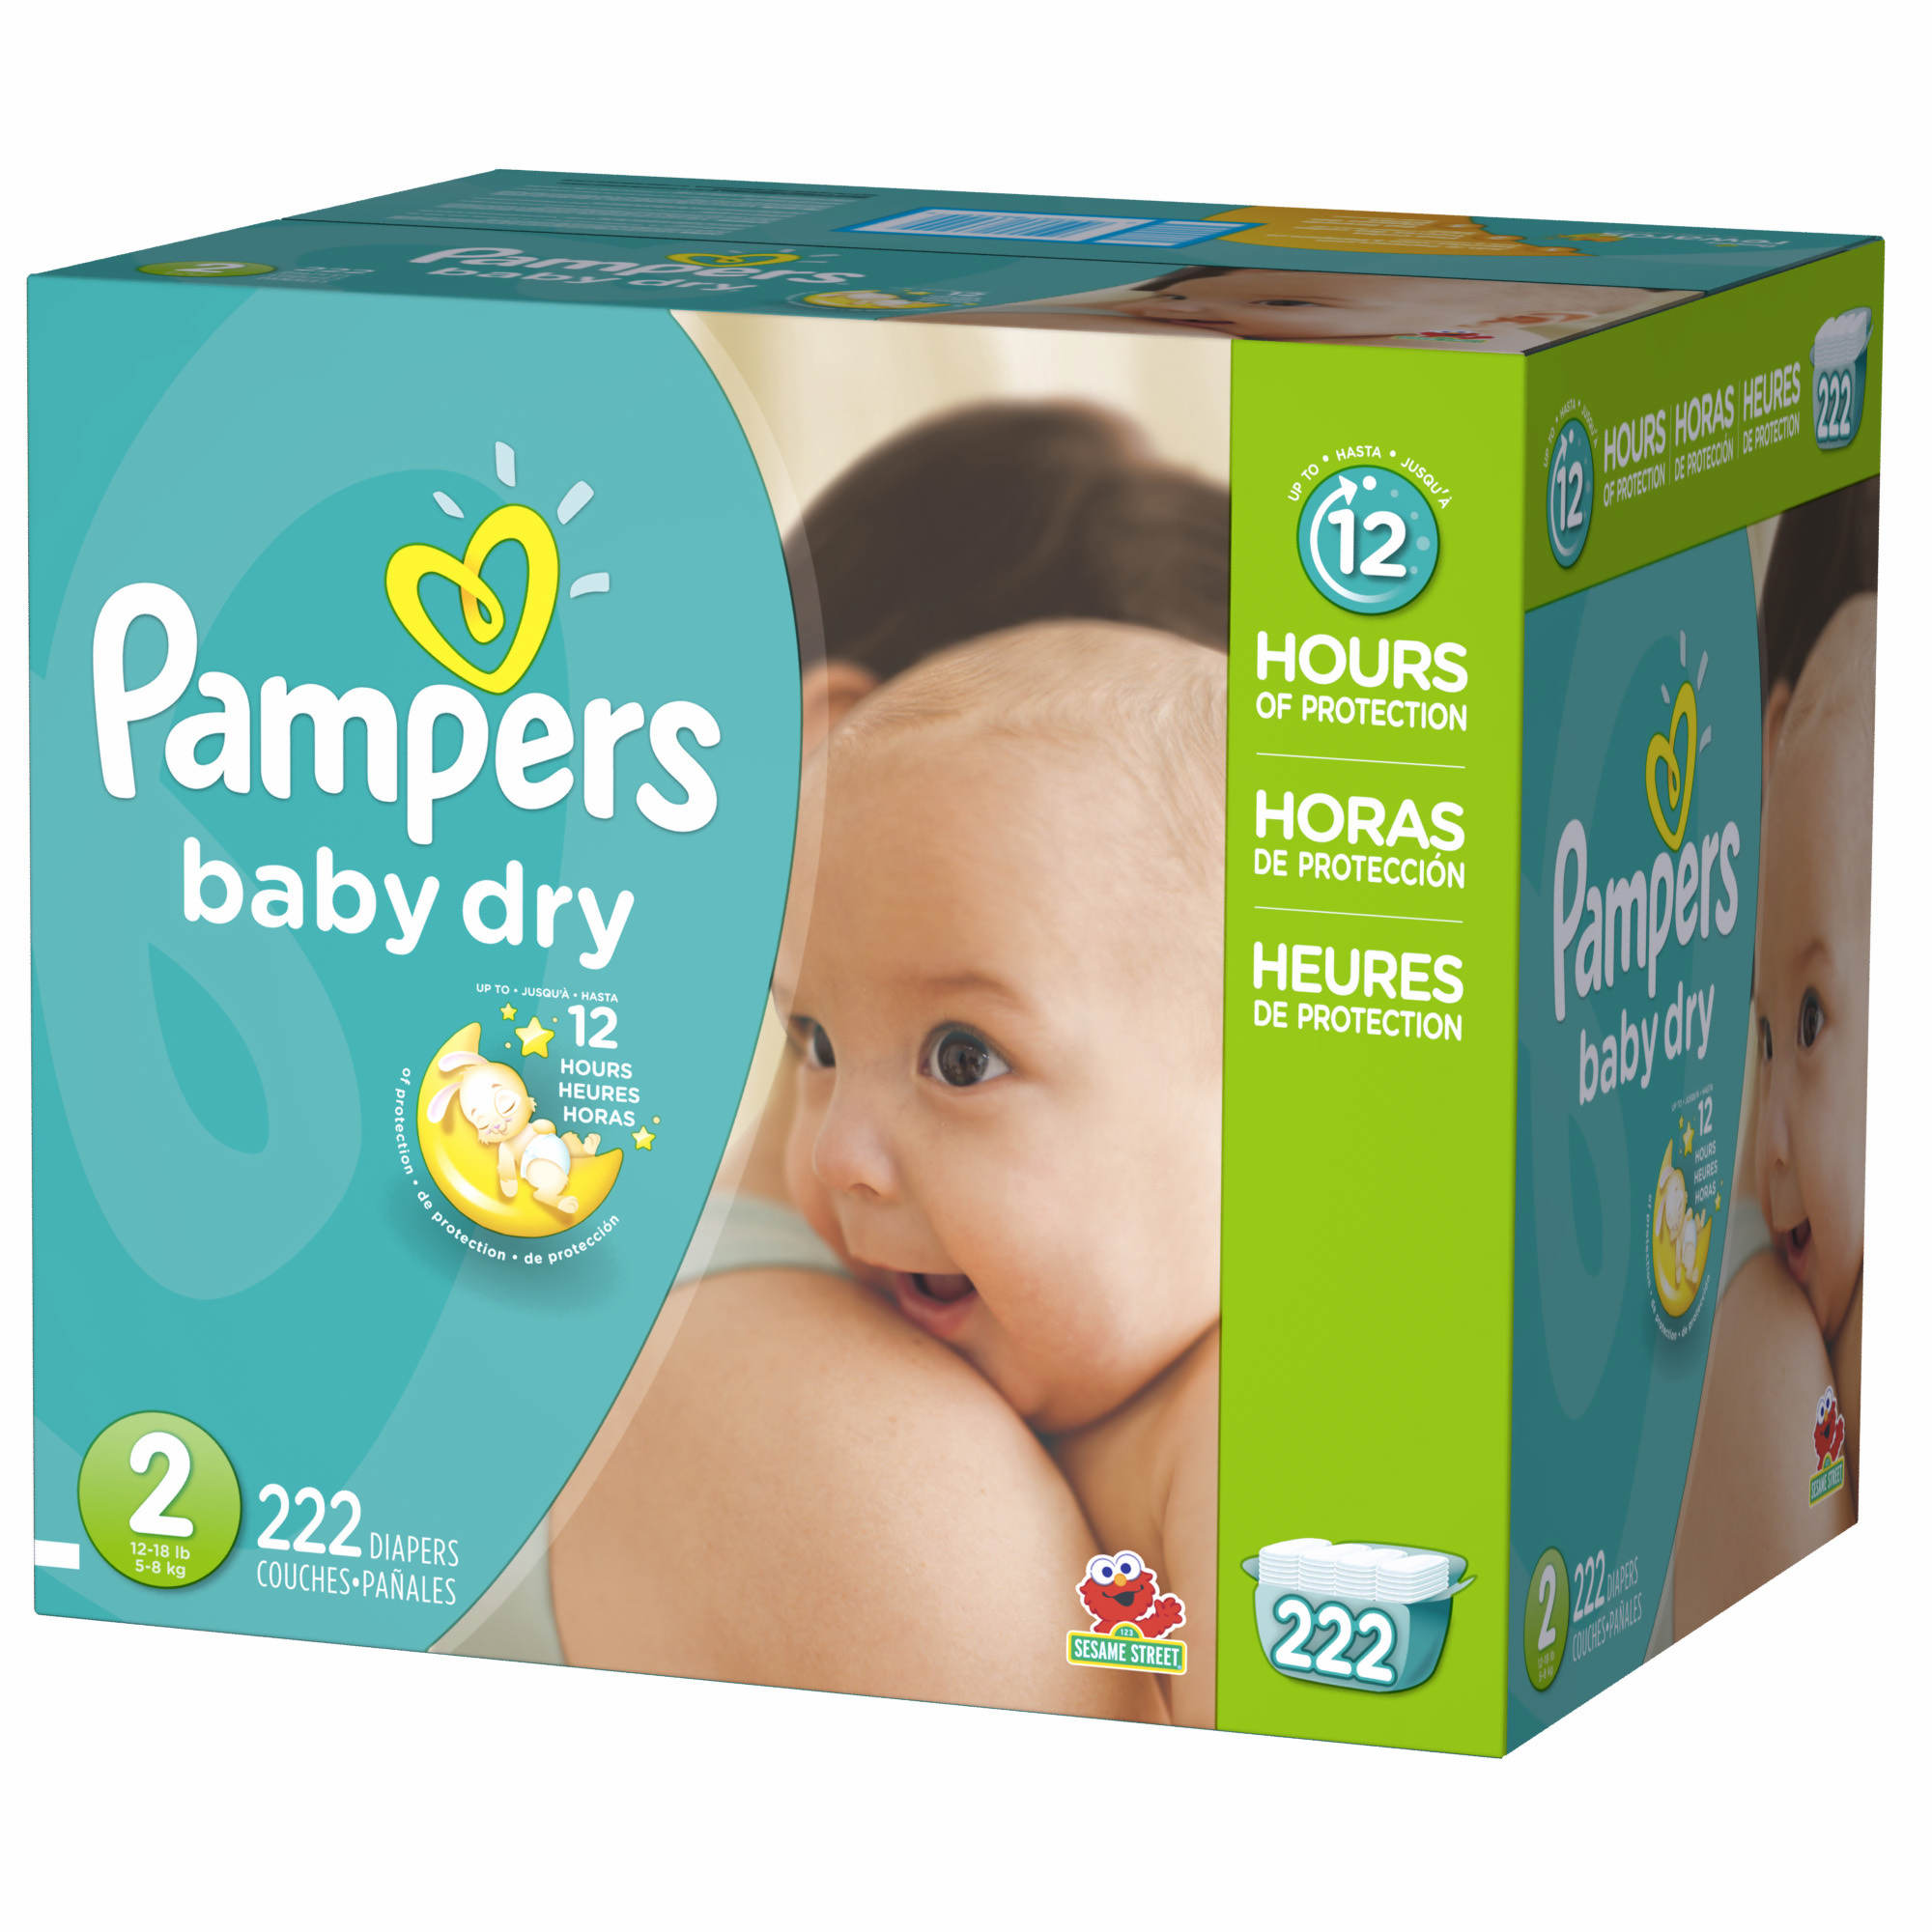 Your baby can get up to 12 hours of overnight dryness with Pampers Baby-Dry diapers. They have 3 Extra Absorb Channels that help distribute wetness evenly and lock it away better. Sizes N, 1, and 2 have a color-changing Wetness Indicator to help you know when it might be time for a babipanggangbangka.tks: